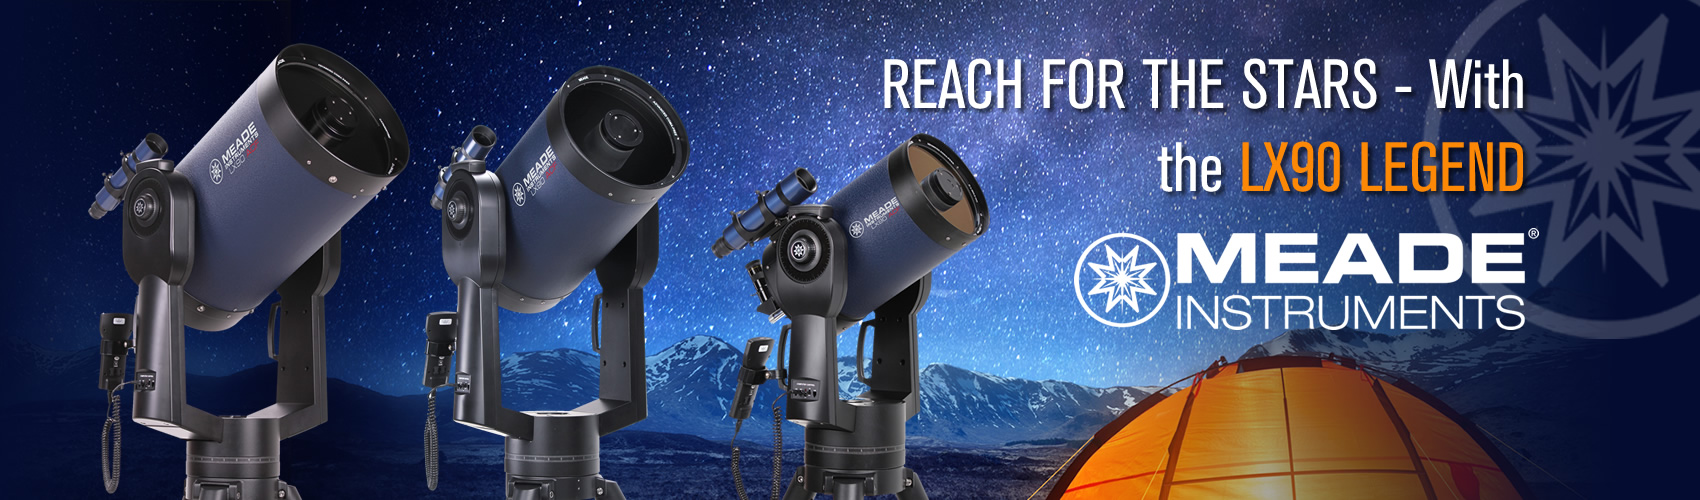 TELESCOPES, PHOTO, OPTICAL, TELESCOPES, PHOTO, OPTICAL, TASCO SALES AUSTRALIA, TSA, call 02 9938 3244. Sky-Watcher, Meade Instruments, Fotopro, Tasco, Weatherby, Magpul, OTIS, GSM Outdoors, BSA, Mossberg, Marocchi, Warne, Howard Leight, H-S Precision, Muck Boots, Night Prowler, Voodoo Tactical, ATV TEK, Camillus.